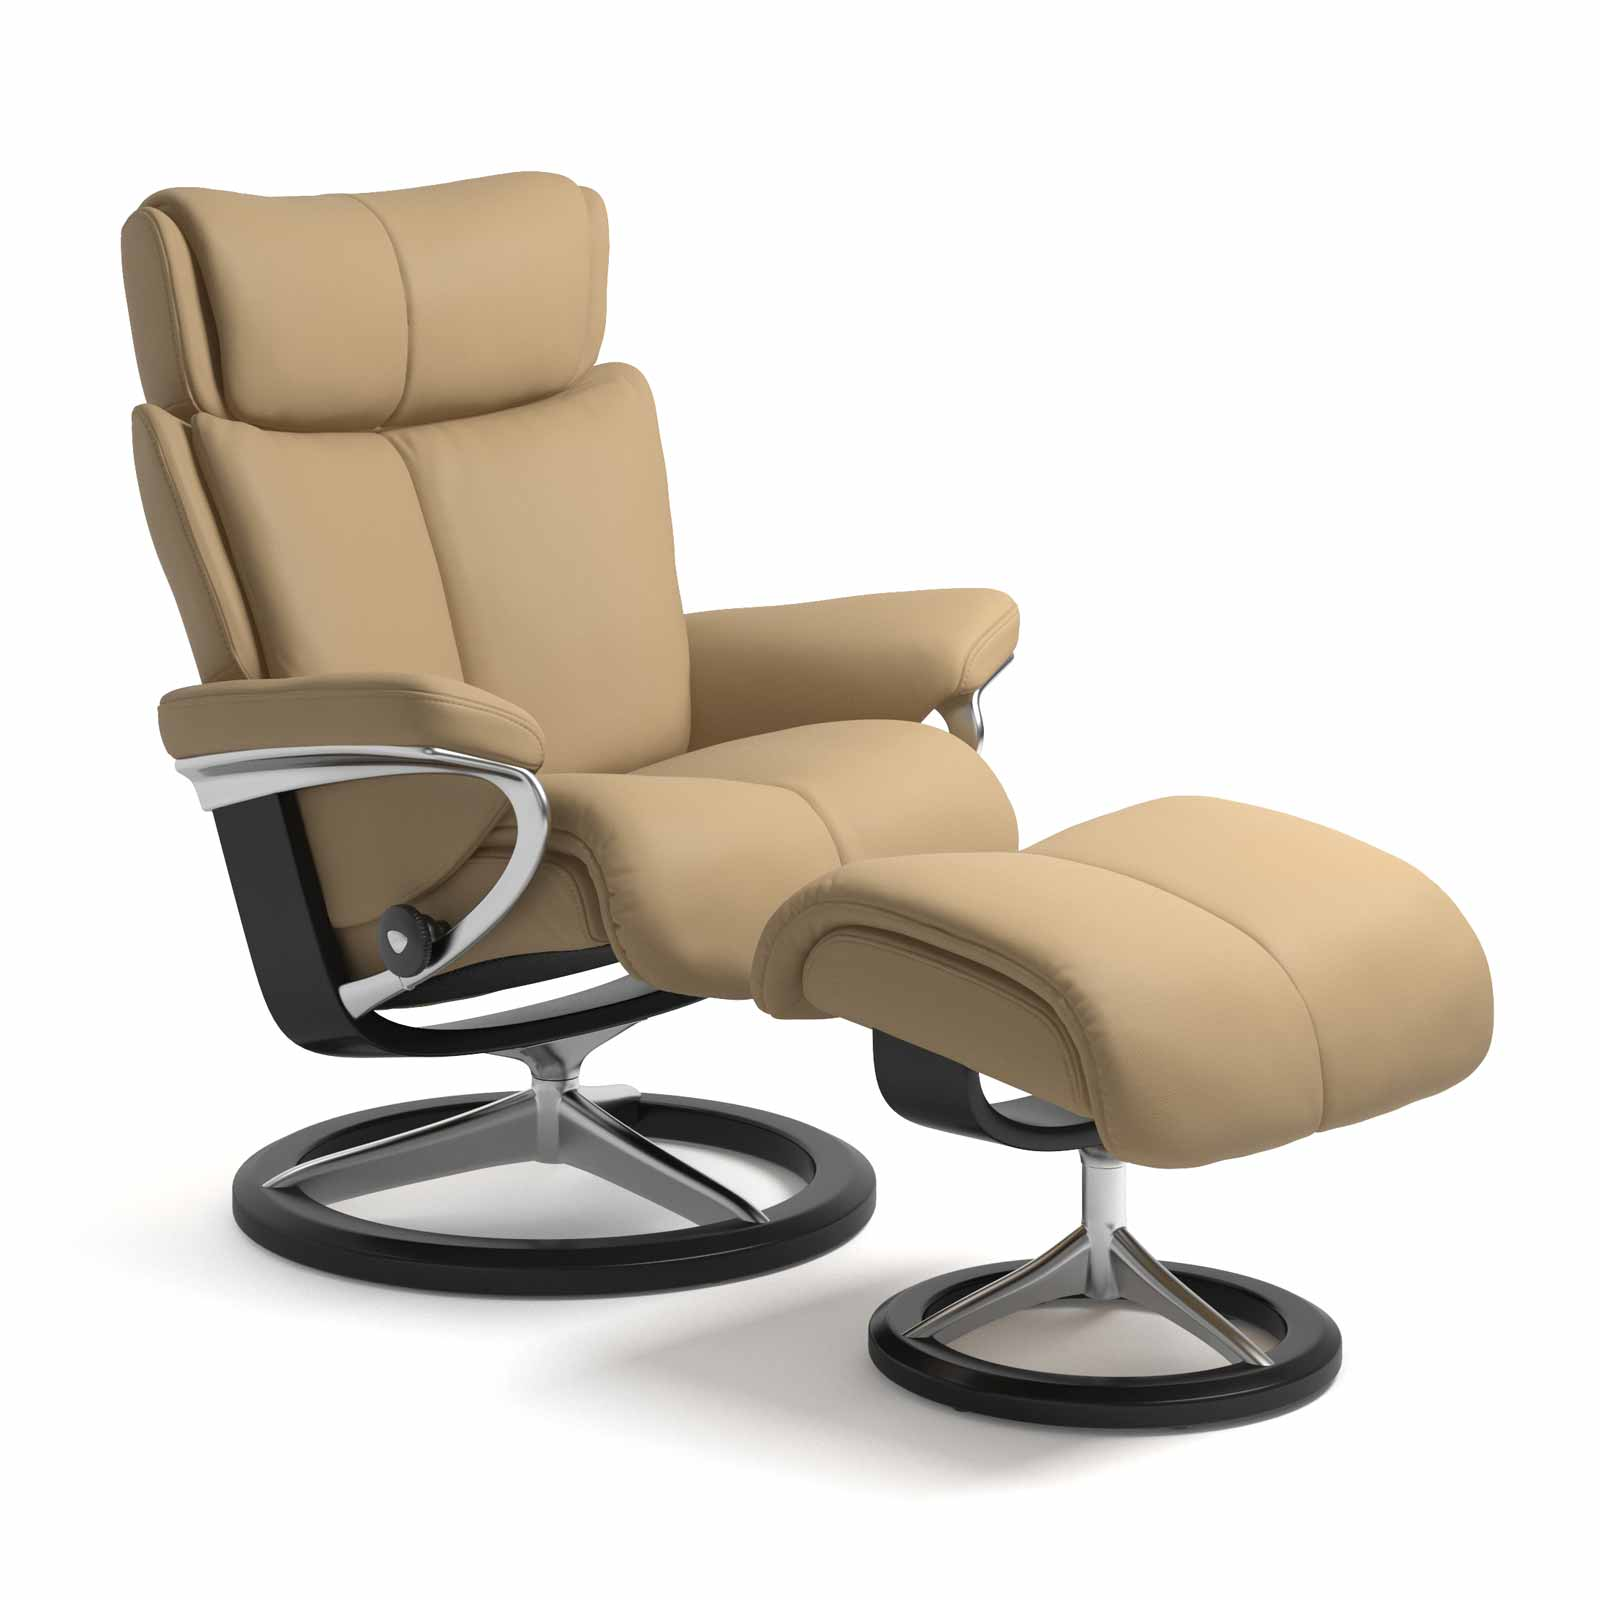 Stressless Magic Signature Sessel Stressless Sessel Magic Signature Paloma Sand Mit Hocker